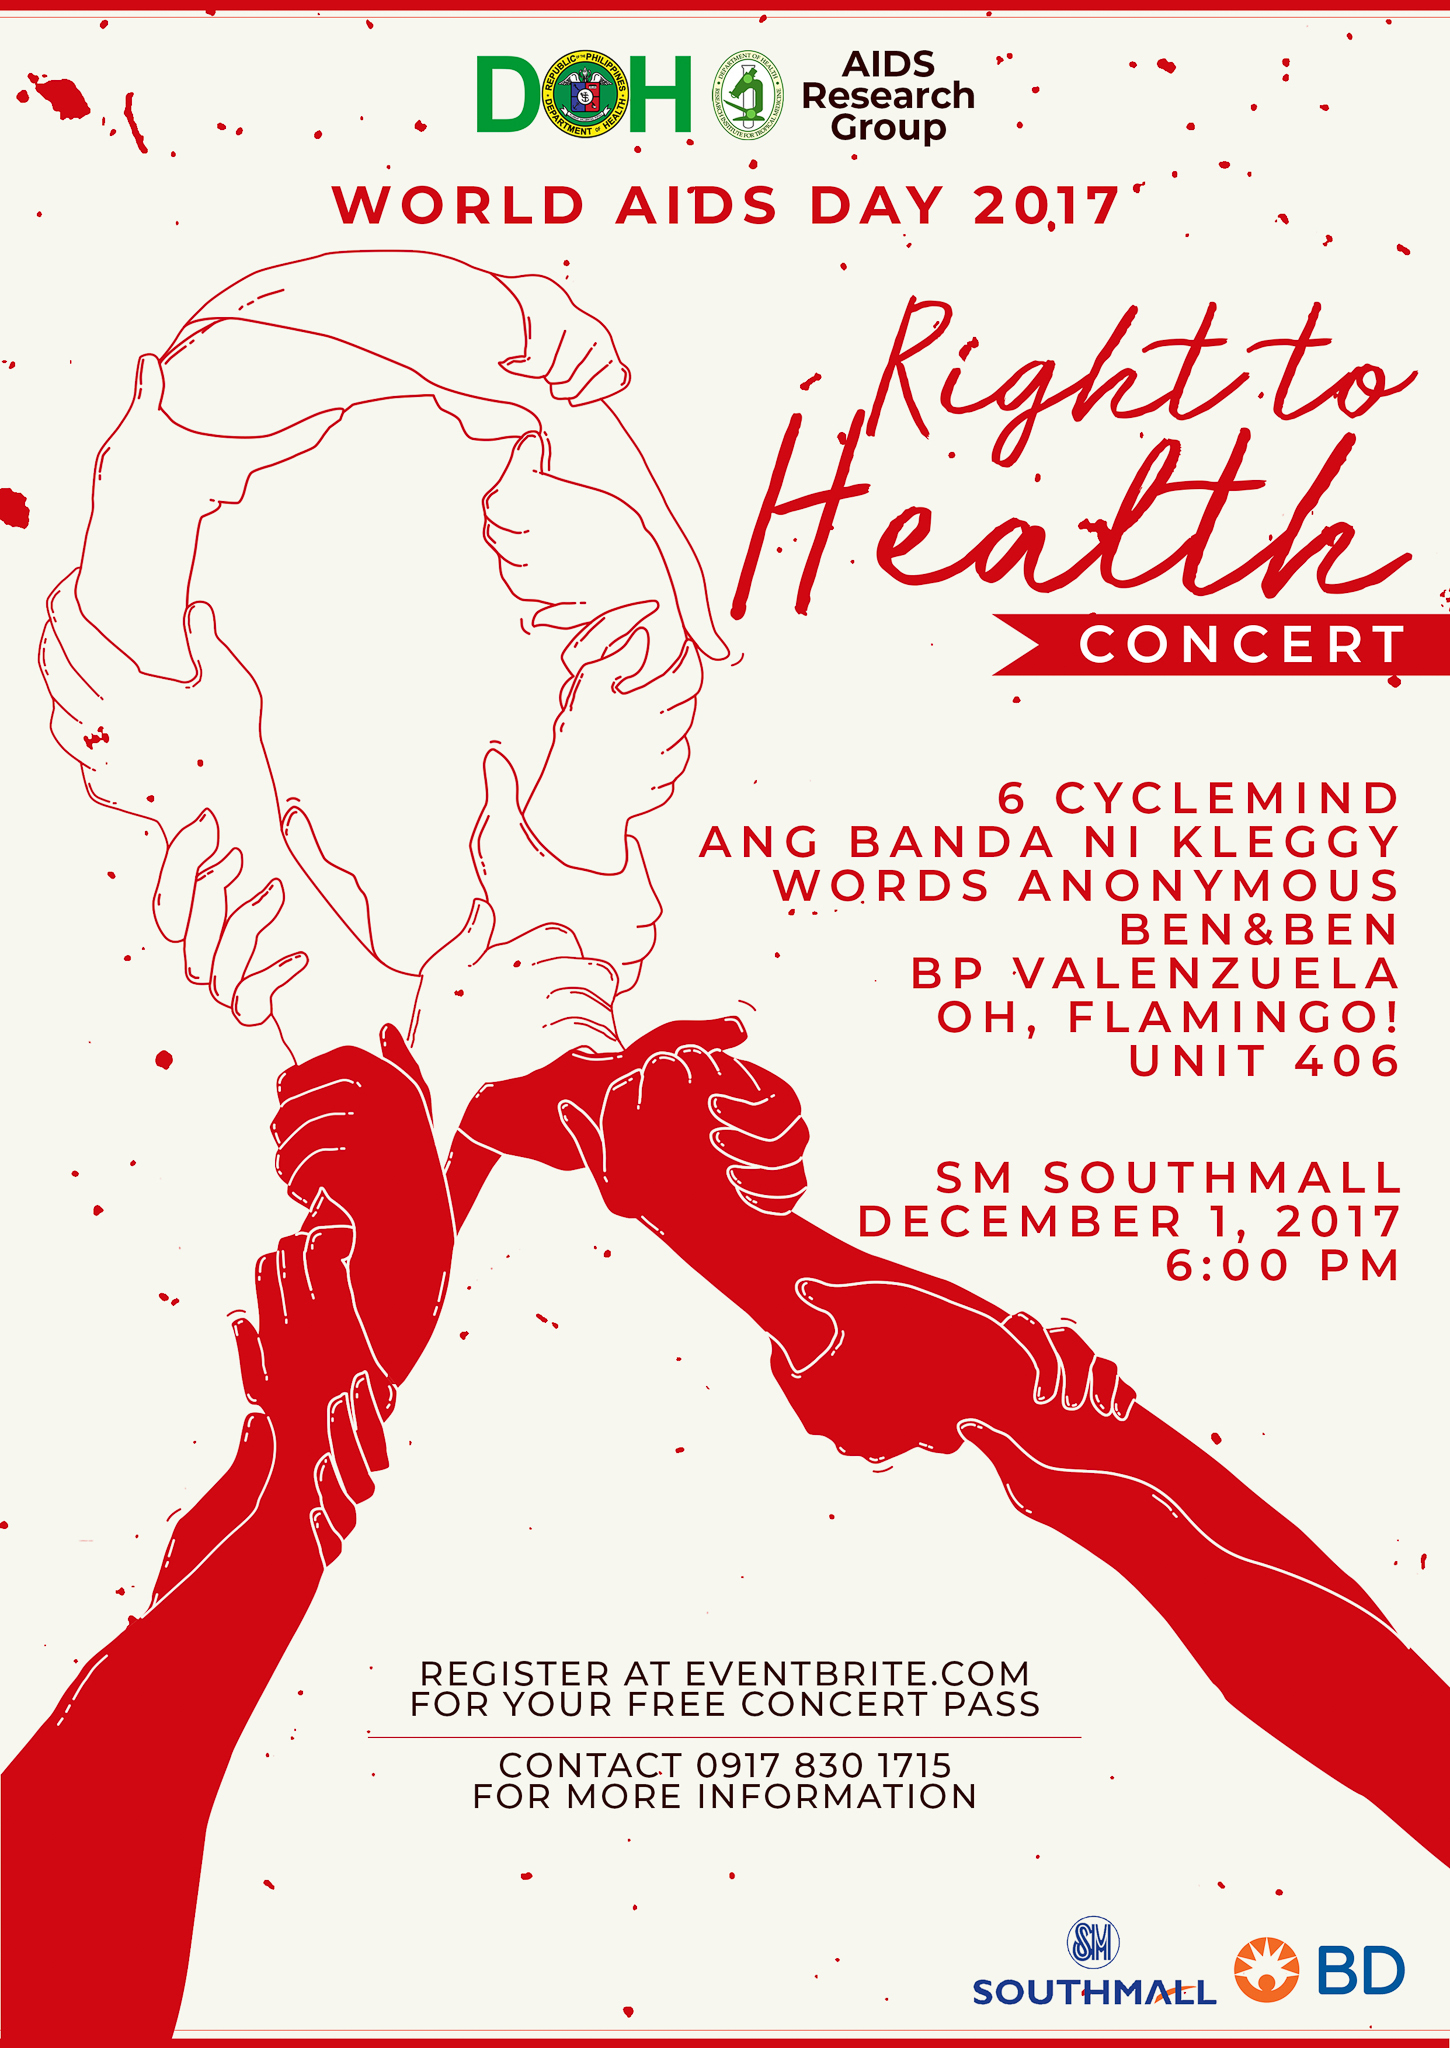 Ben&Ben, BP Valenzuela, and more come together to raise HIV-AIDS